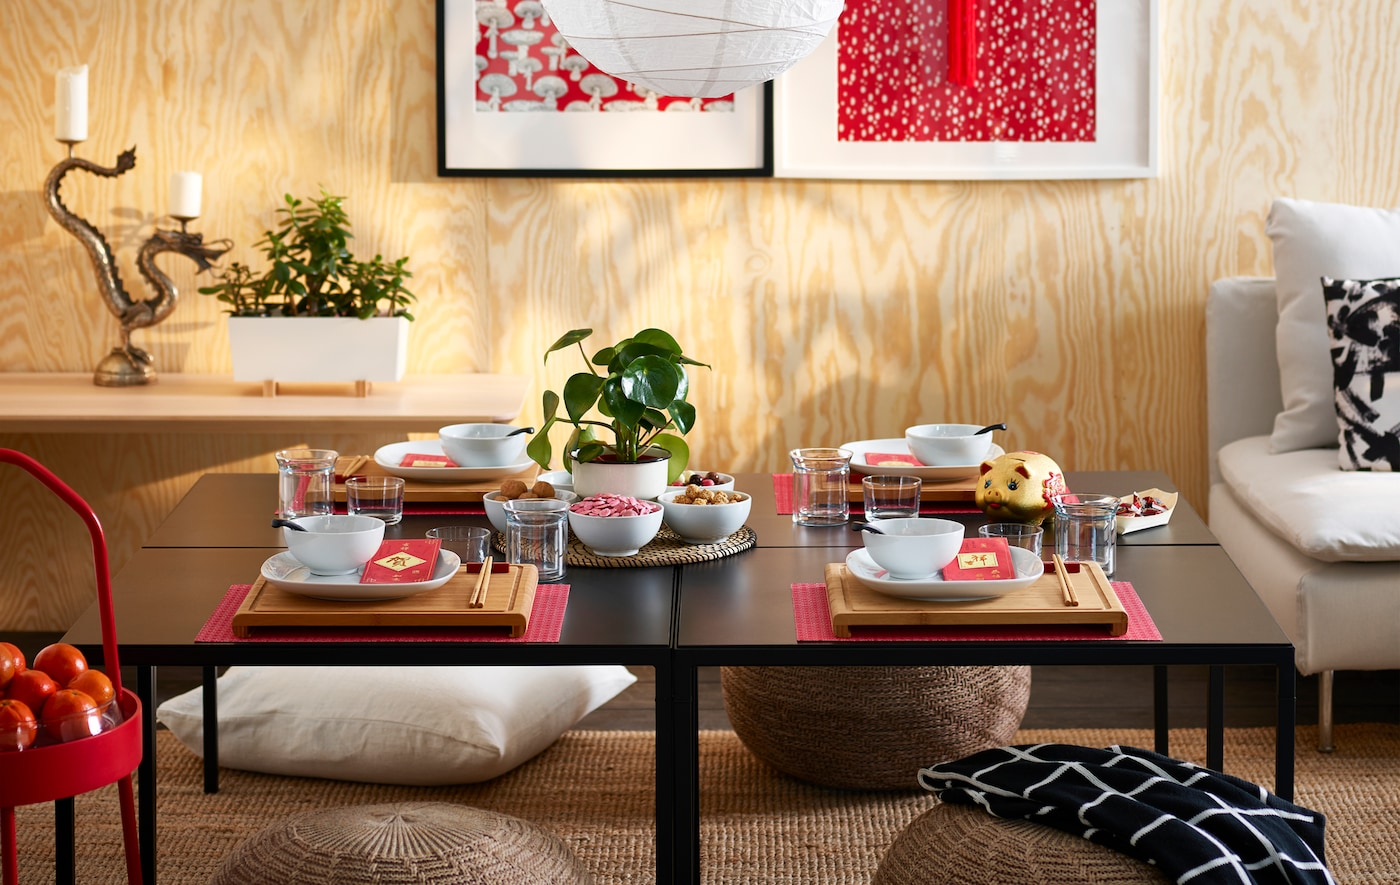 Setting the table with some RIMFORSA chopping boards in bamboo is one idea on how to create the right atmosphere.